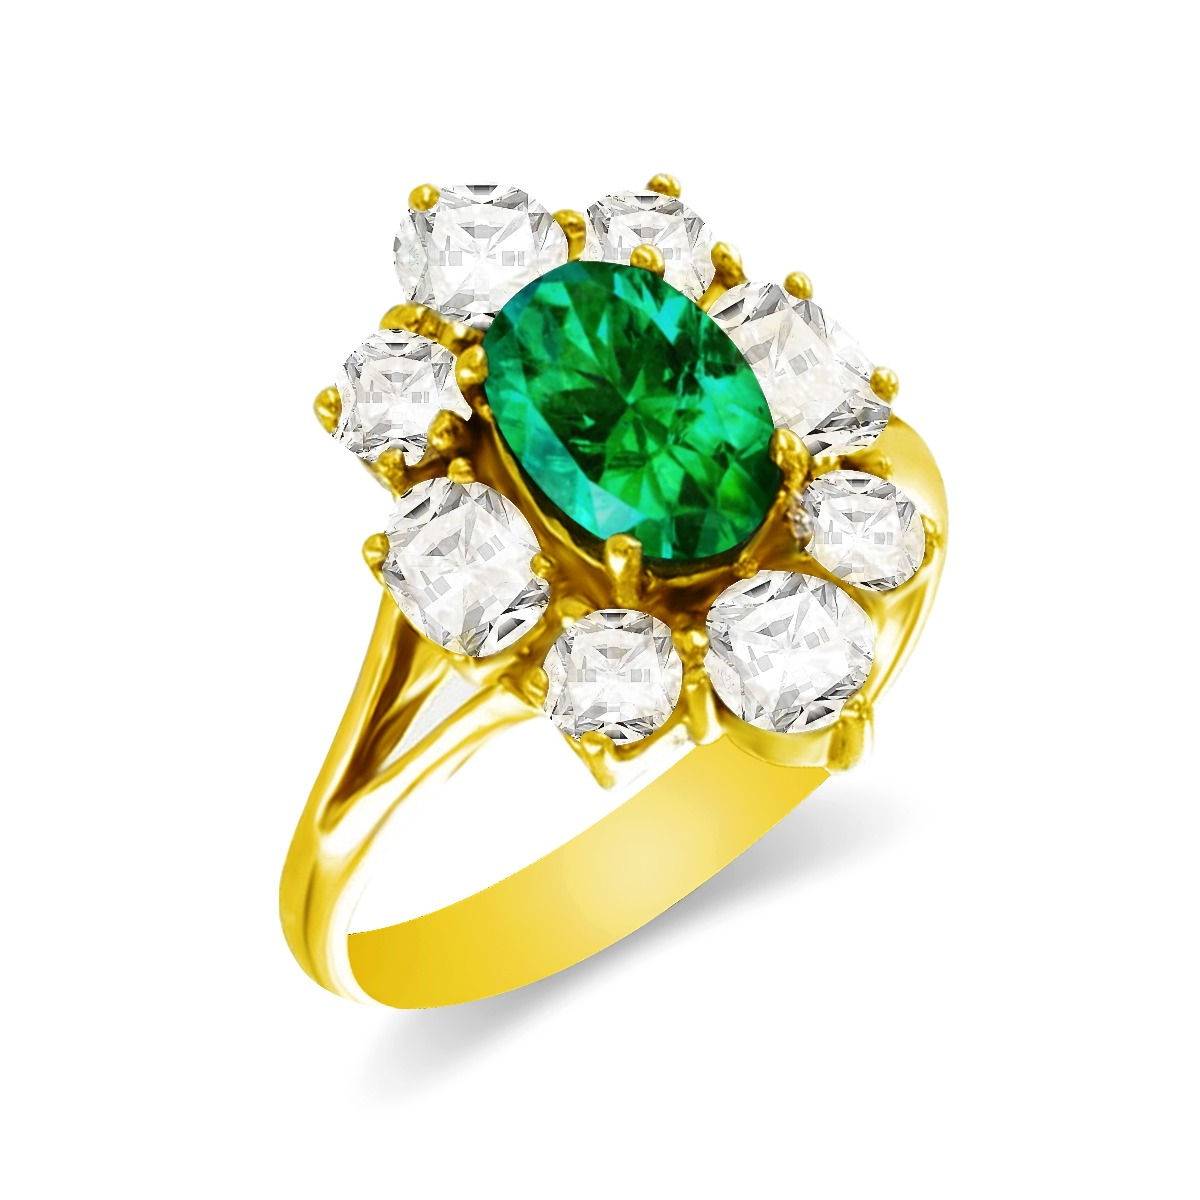 0.80ct Oval Cut Emerald & 1.40ct Diamond Cluster Ring   18K Yellow Gold